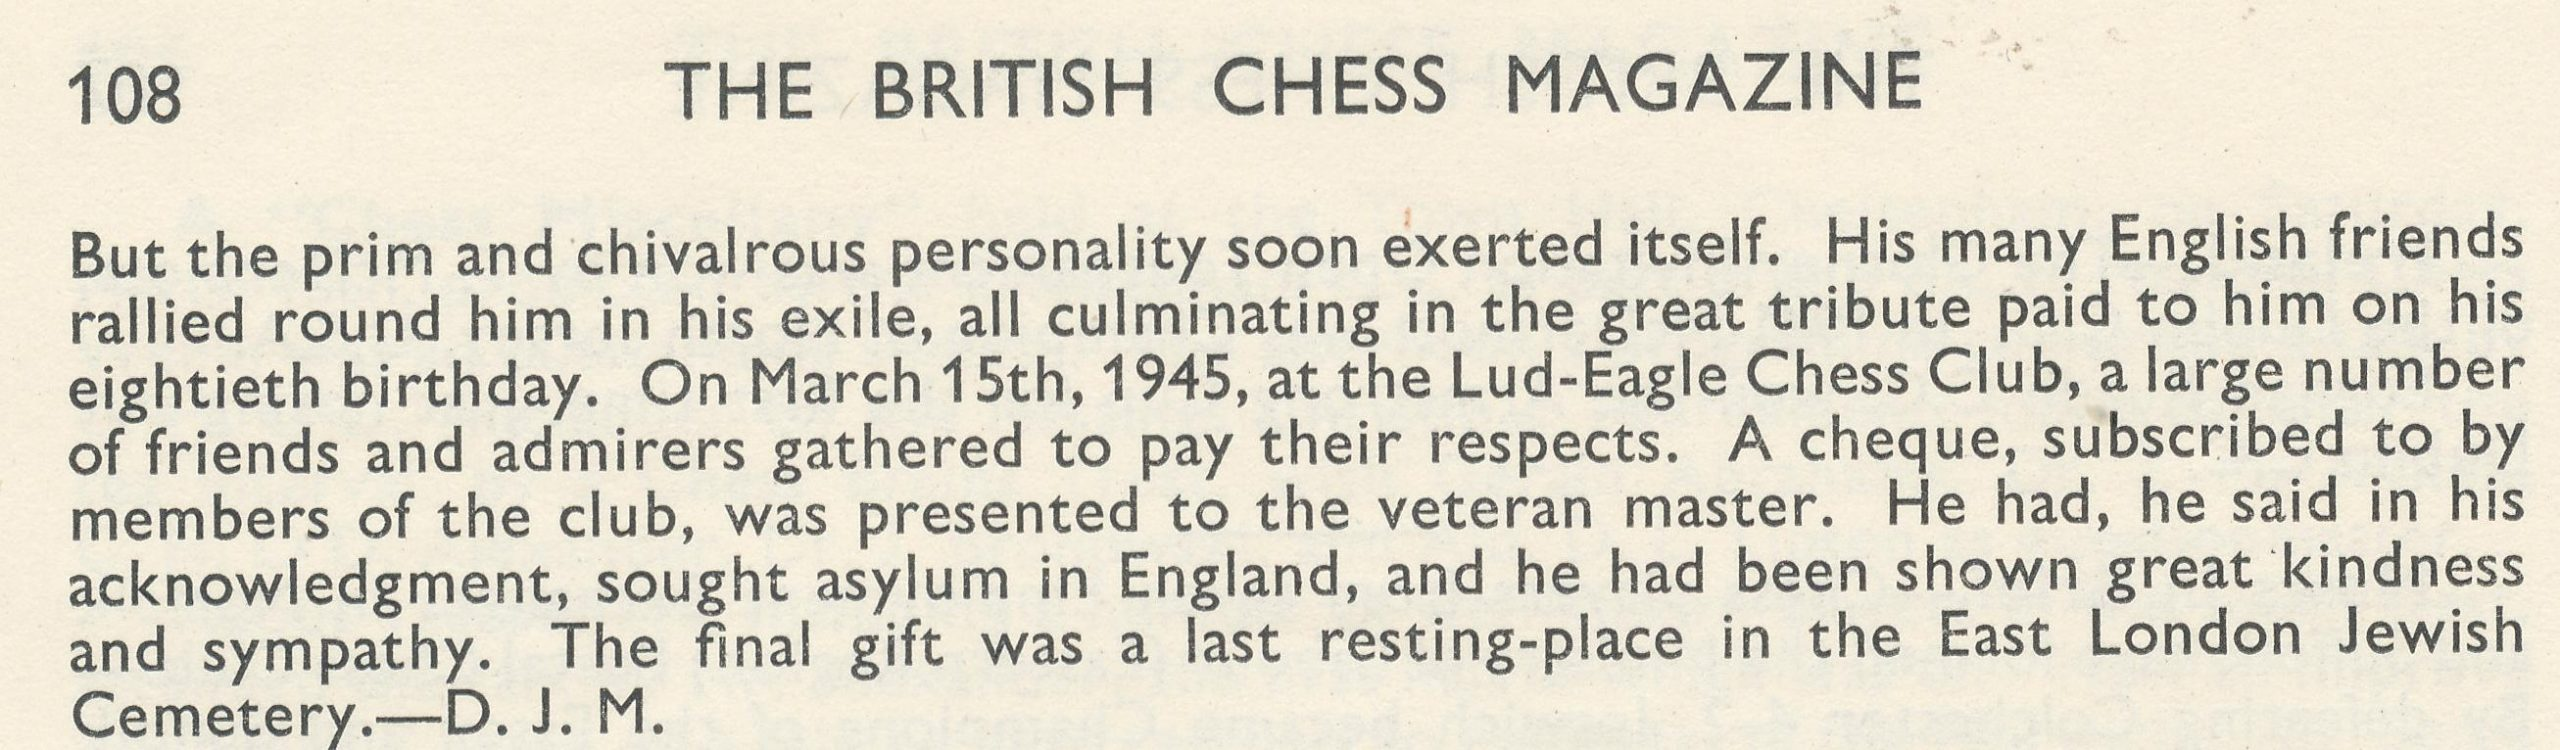 Obituary of Jacques Mieses by DJ Morgan. British Chess Magazine, Volume LXXIV (74, 1954), Number 4 (April), pp. 107-108.